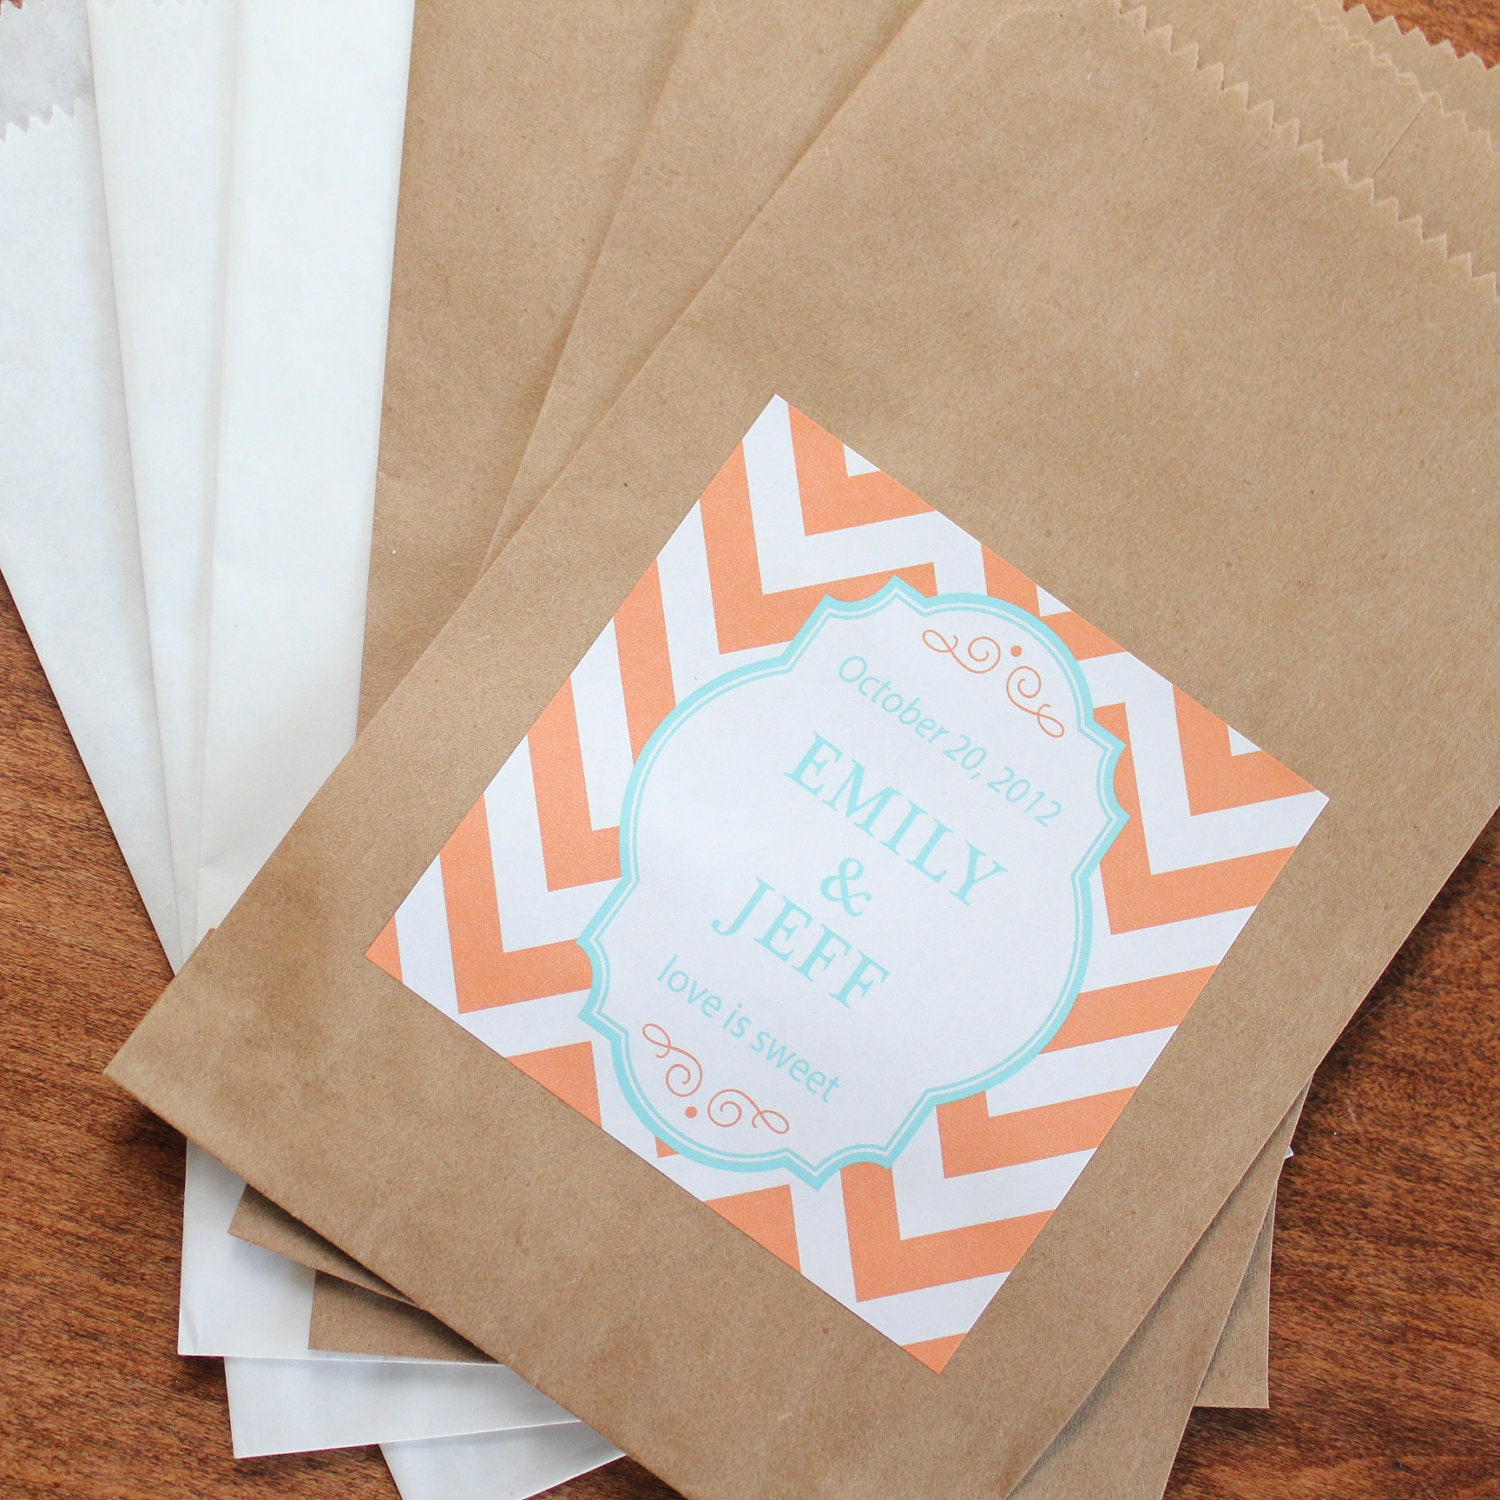 Custom Printed Wedding Favor Bags : 24 Wedding Favor Bags with Personalized Chevron by thefavorbox